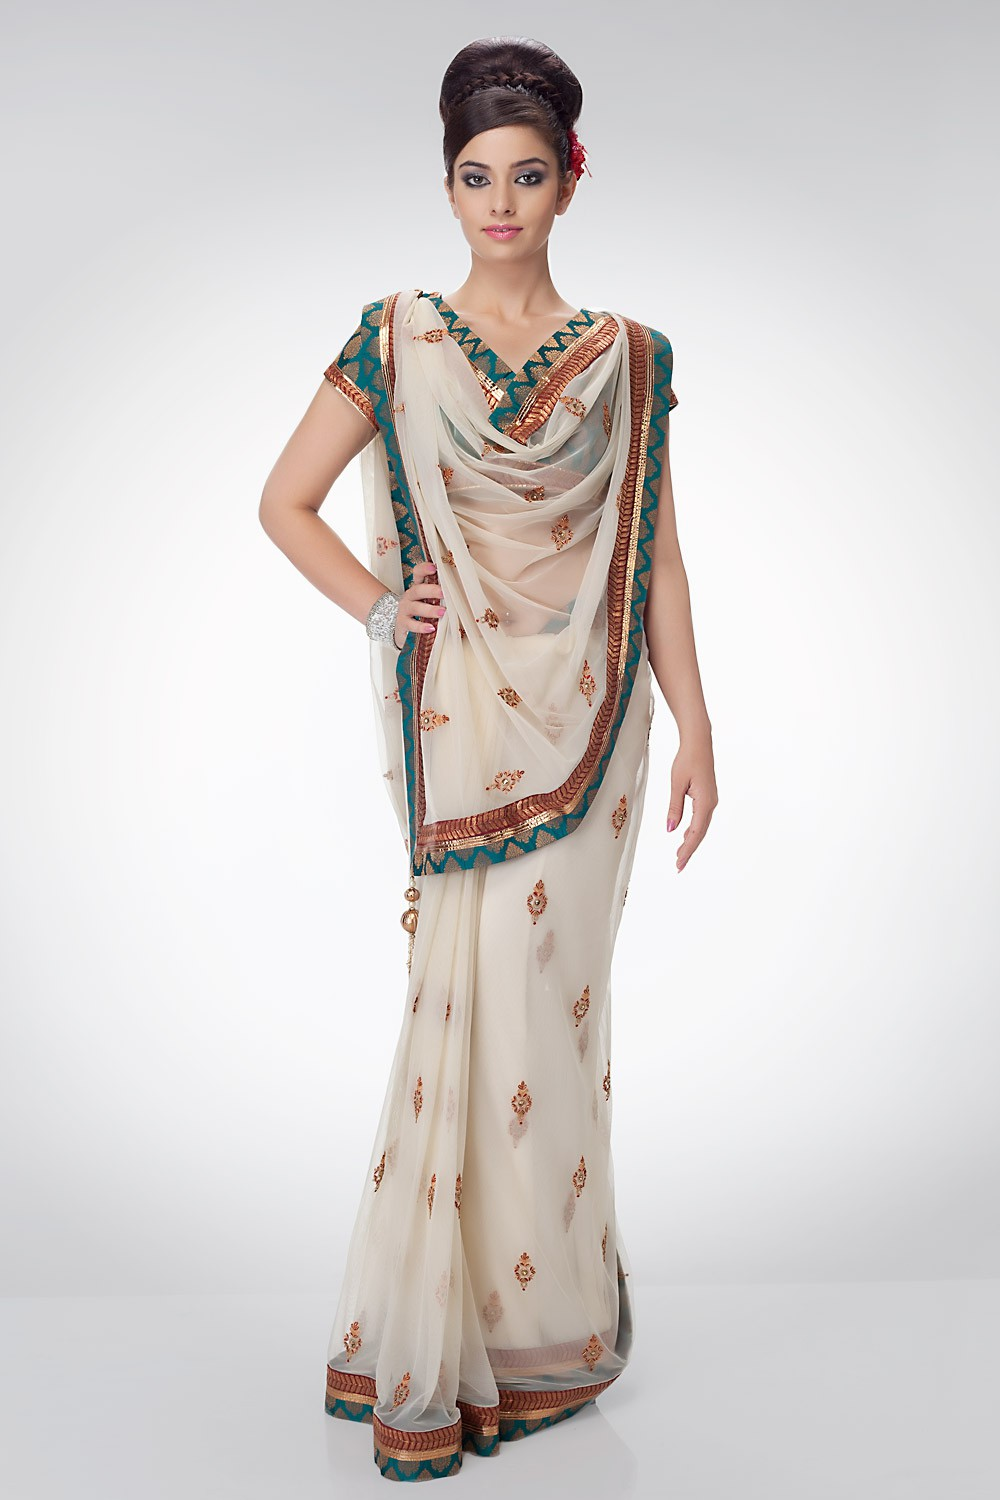 Paul satya sarees collection recommend dress for on every day in 2019